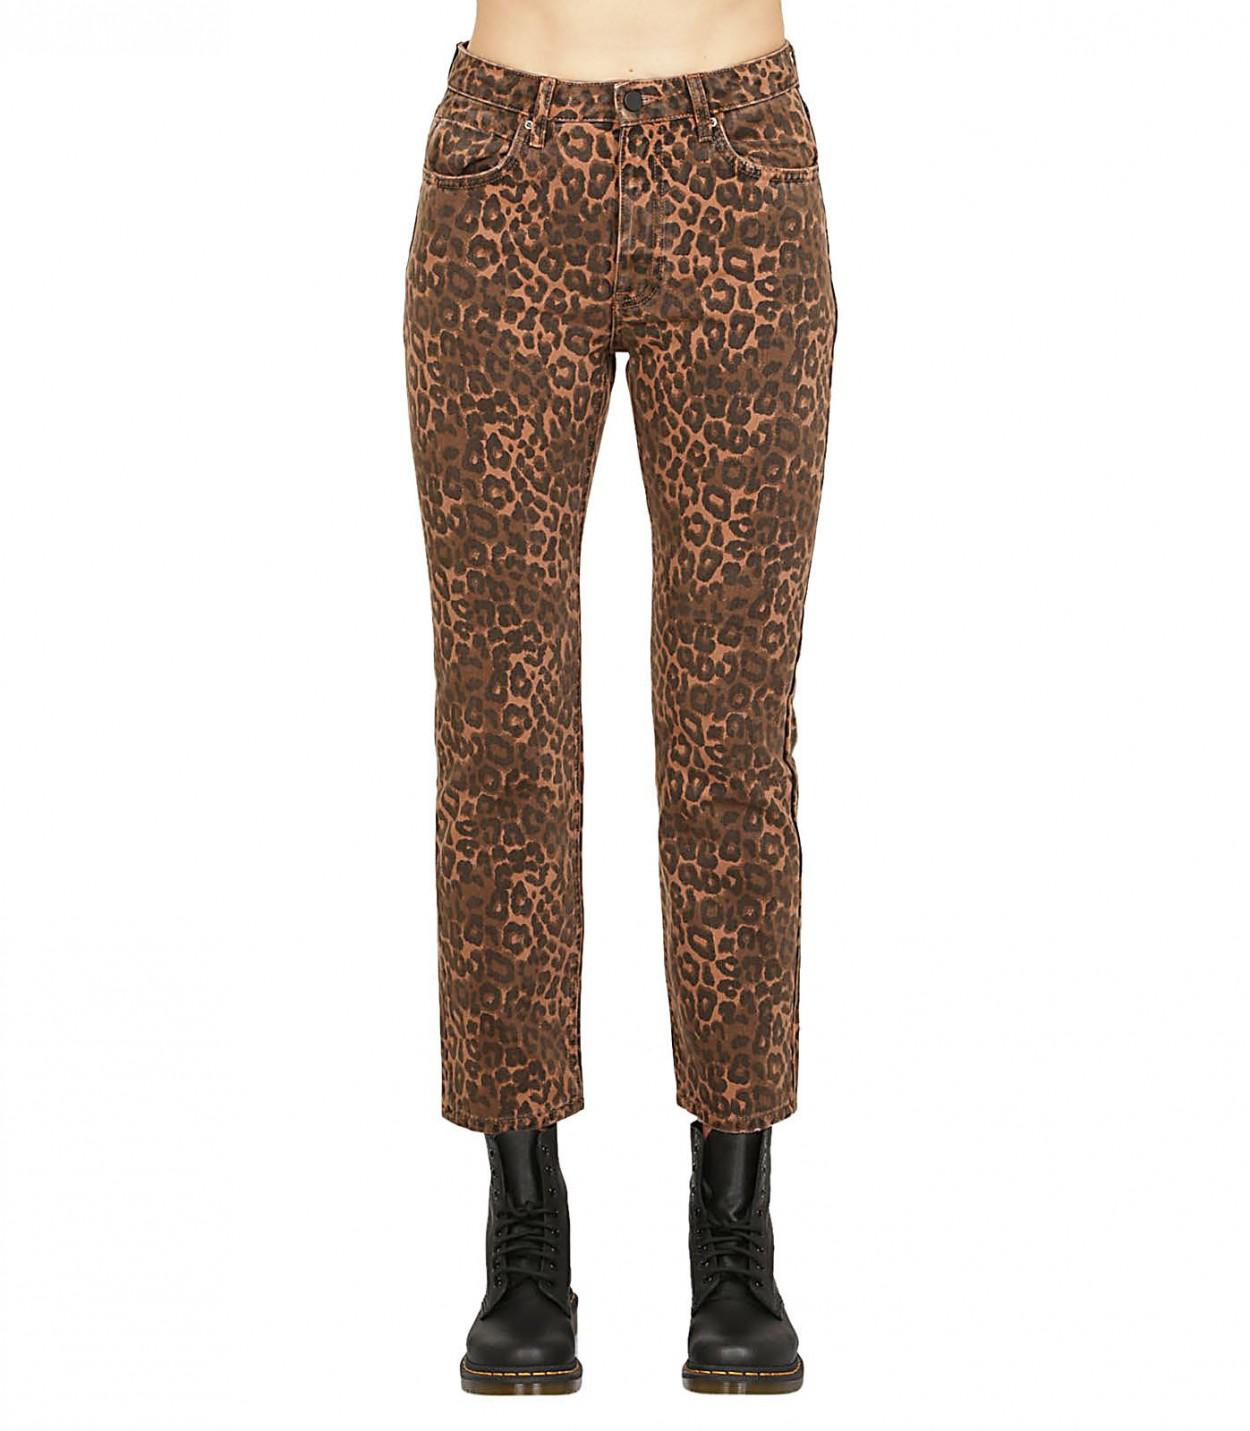 ca6621dfd8e6 Lyst - Alexander Wang Leopard Print Jeans in Brown